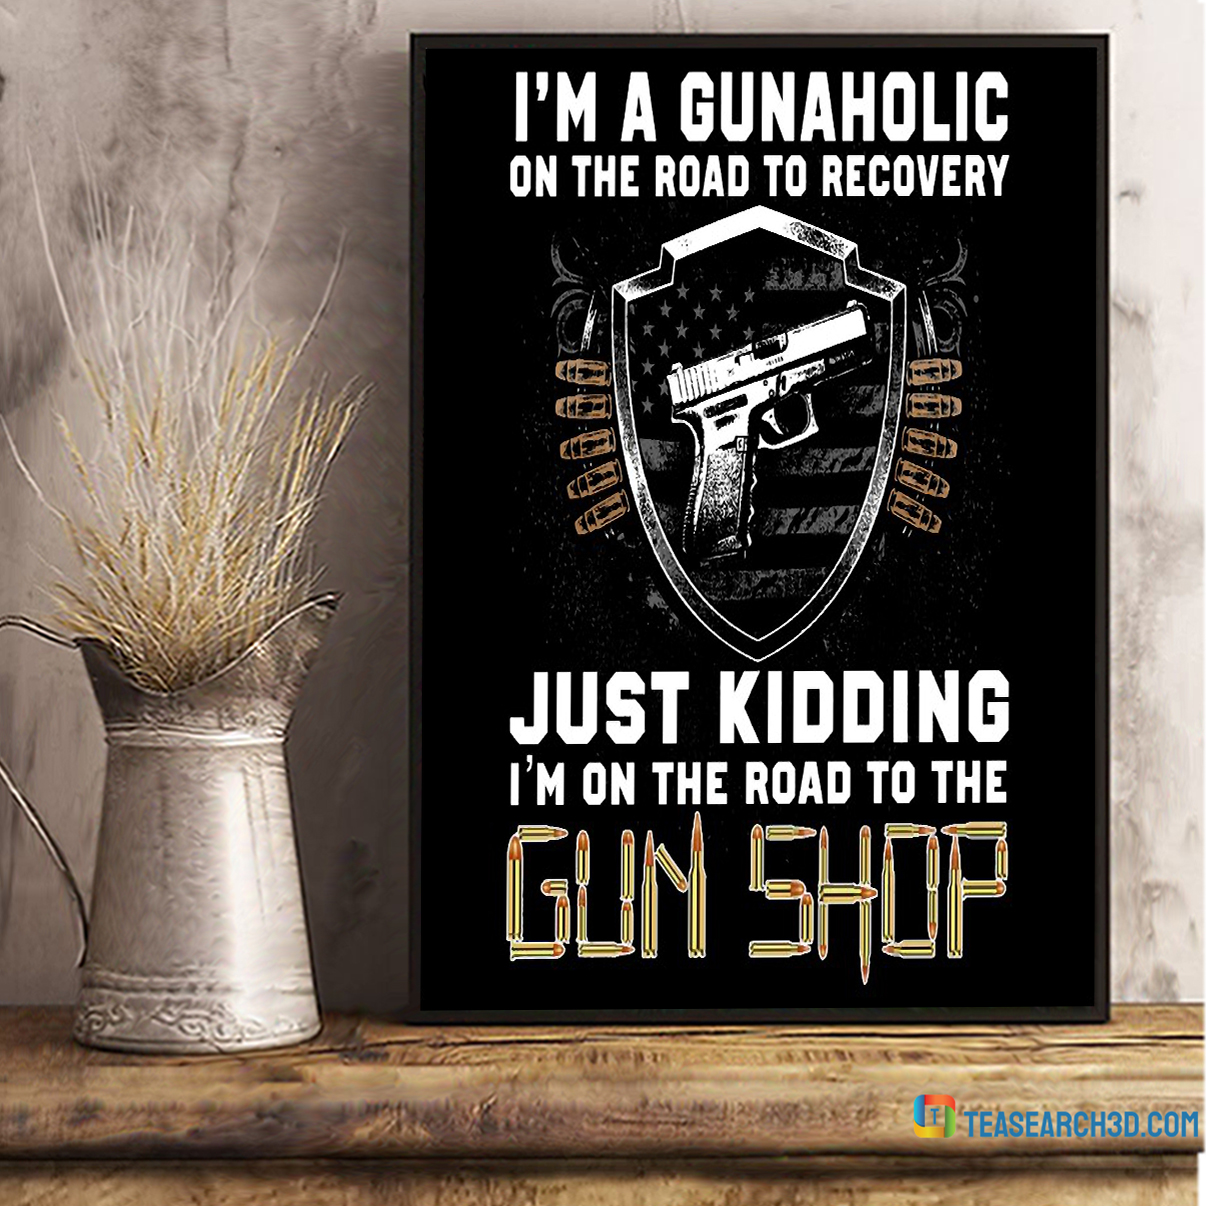 I'm a gunaholic on the road to recovery poster A2